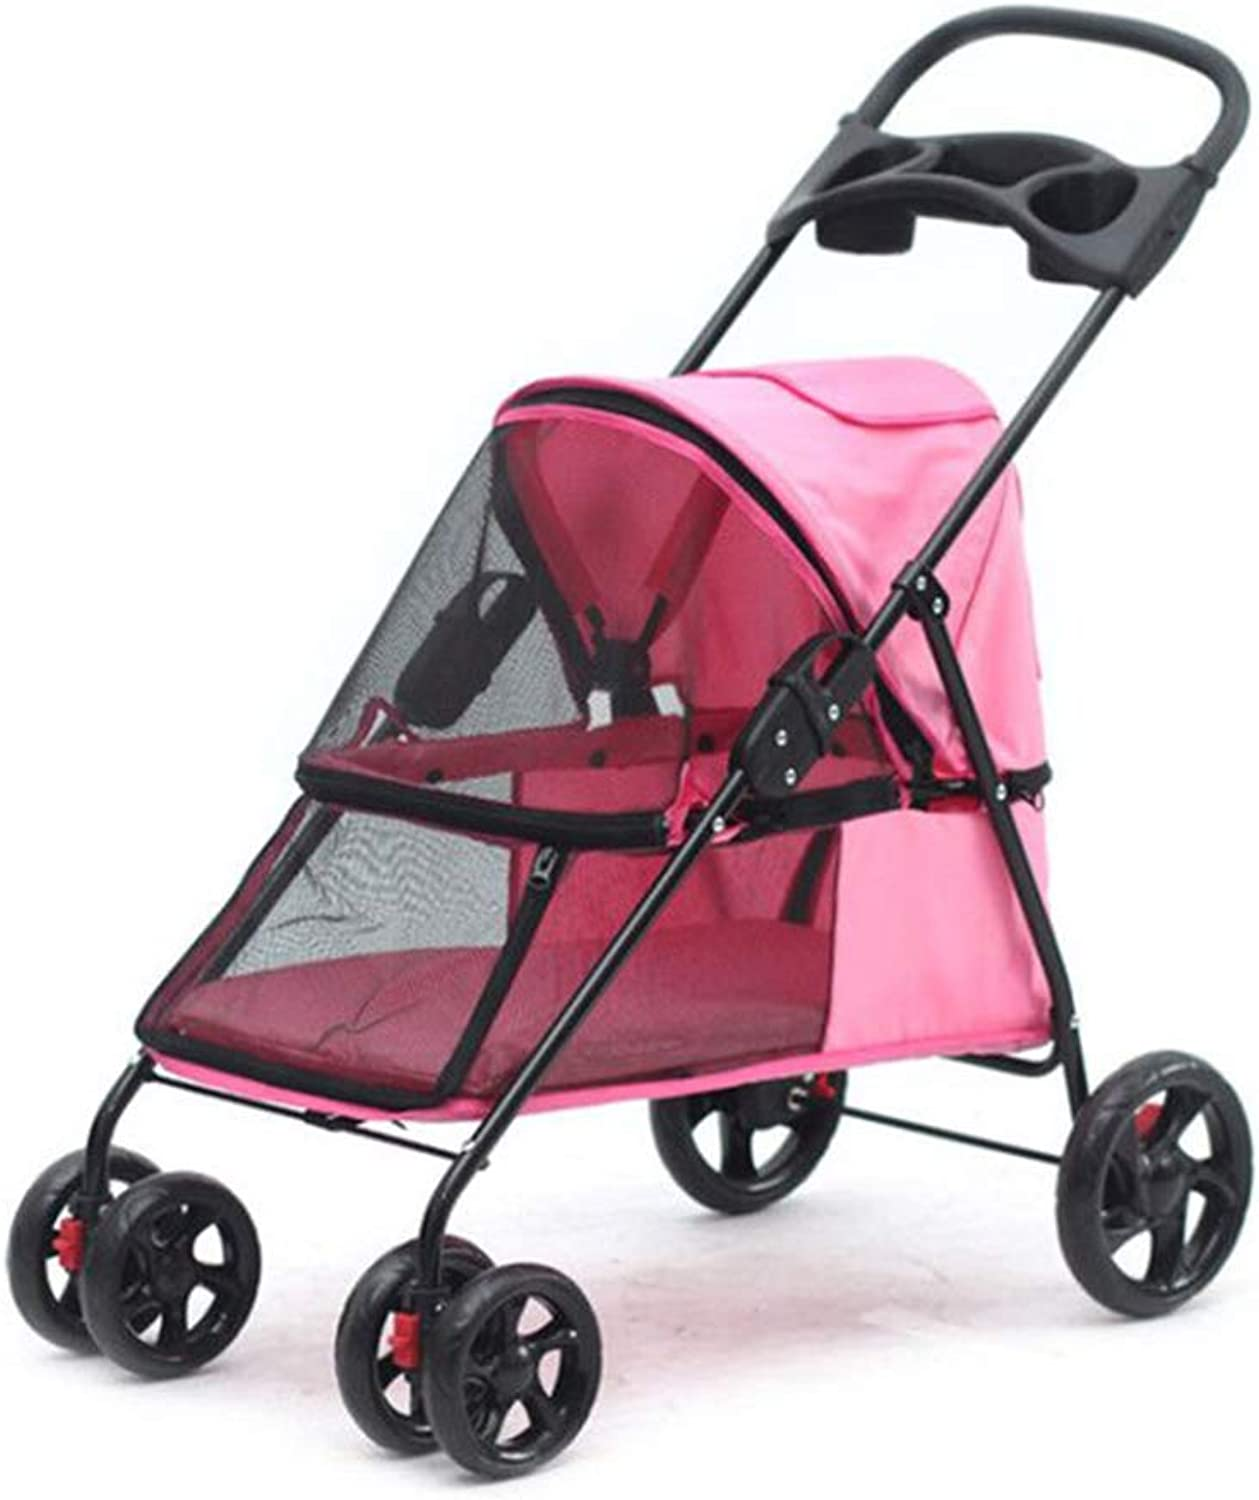 Jlxl Pet Stroller Can Fold Aluminum Alloy Stroller Sunscreen Rainproof Outdoor Travel Car Load 15kg For EVA Tire Damping (color   PINK)